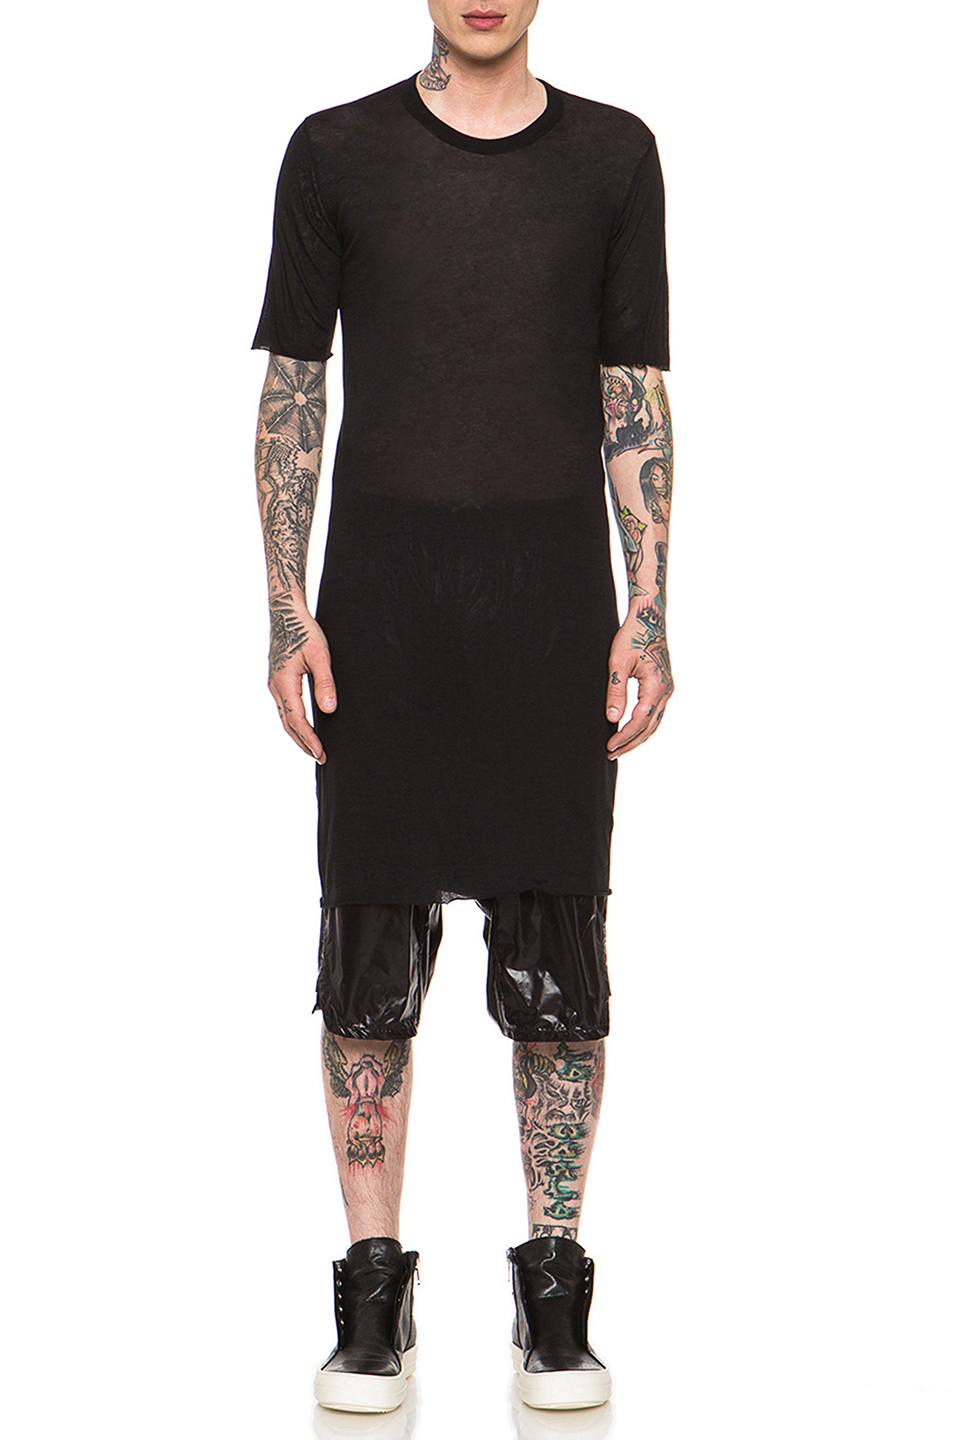 Rick Owens Short Sleeve Crew Neck Tee in Black